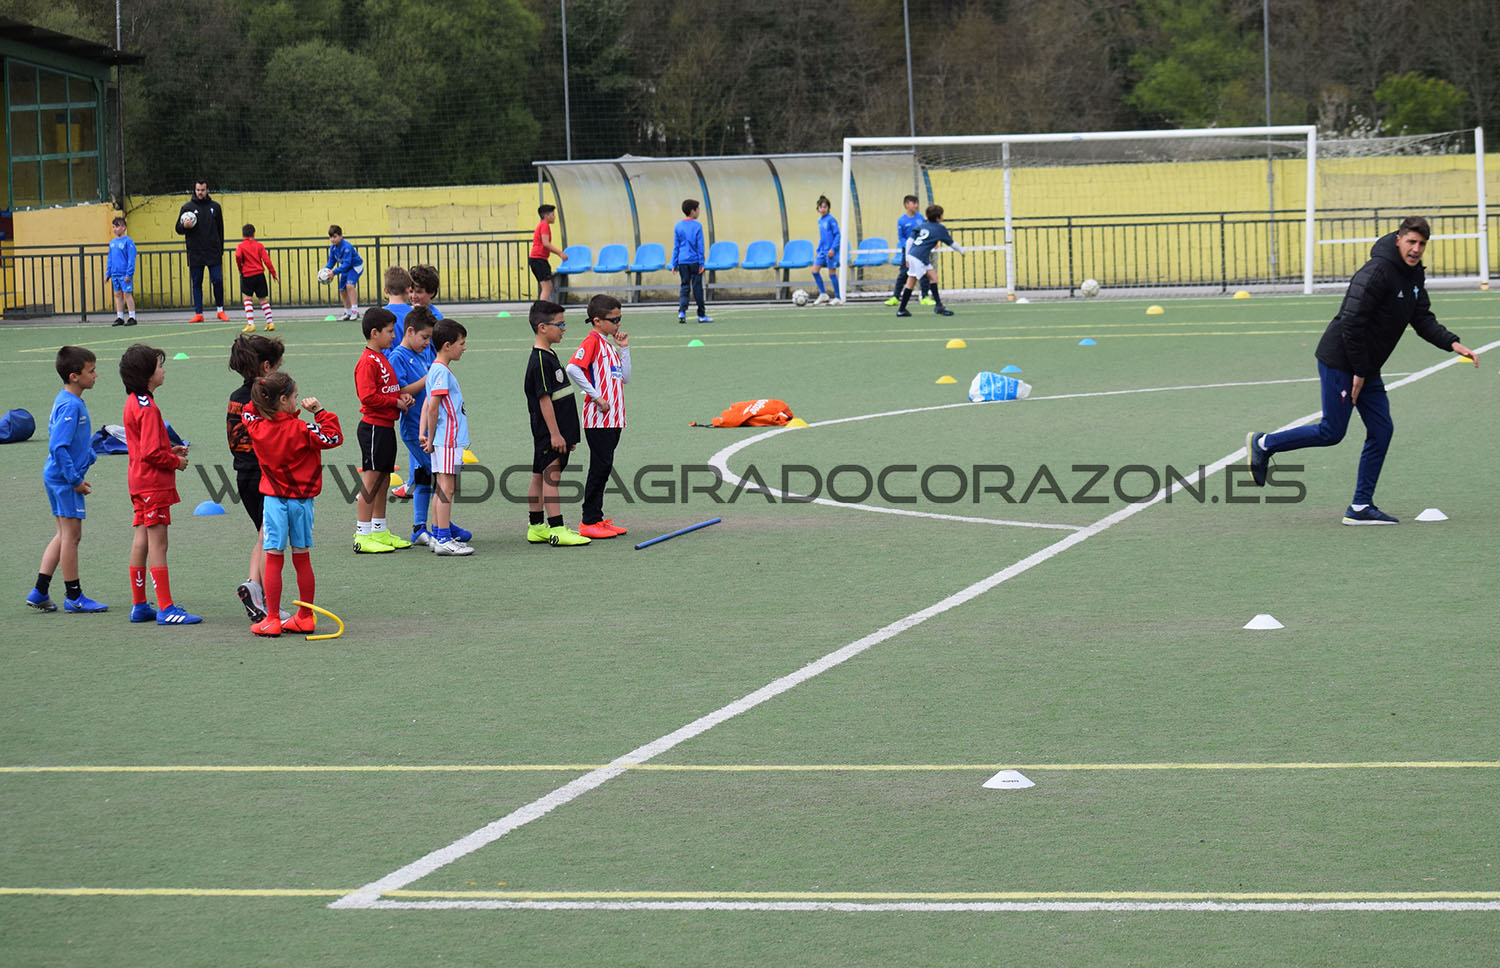 clinic-celta-sagrado (28)